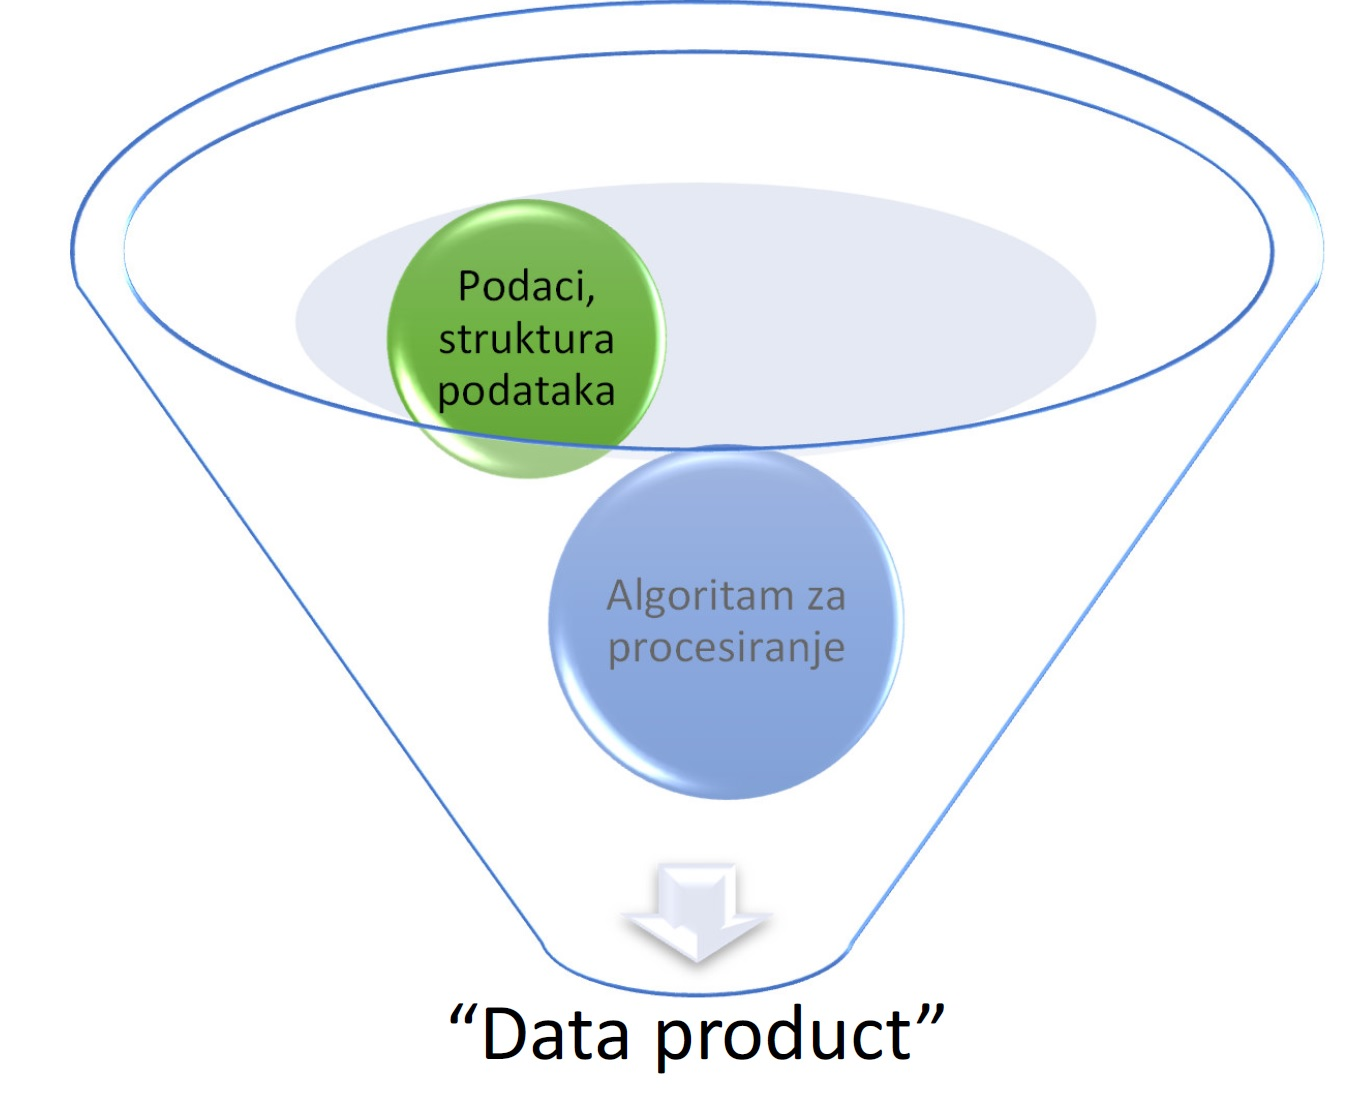 Data product